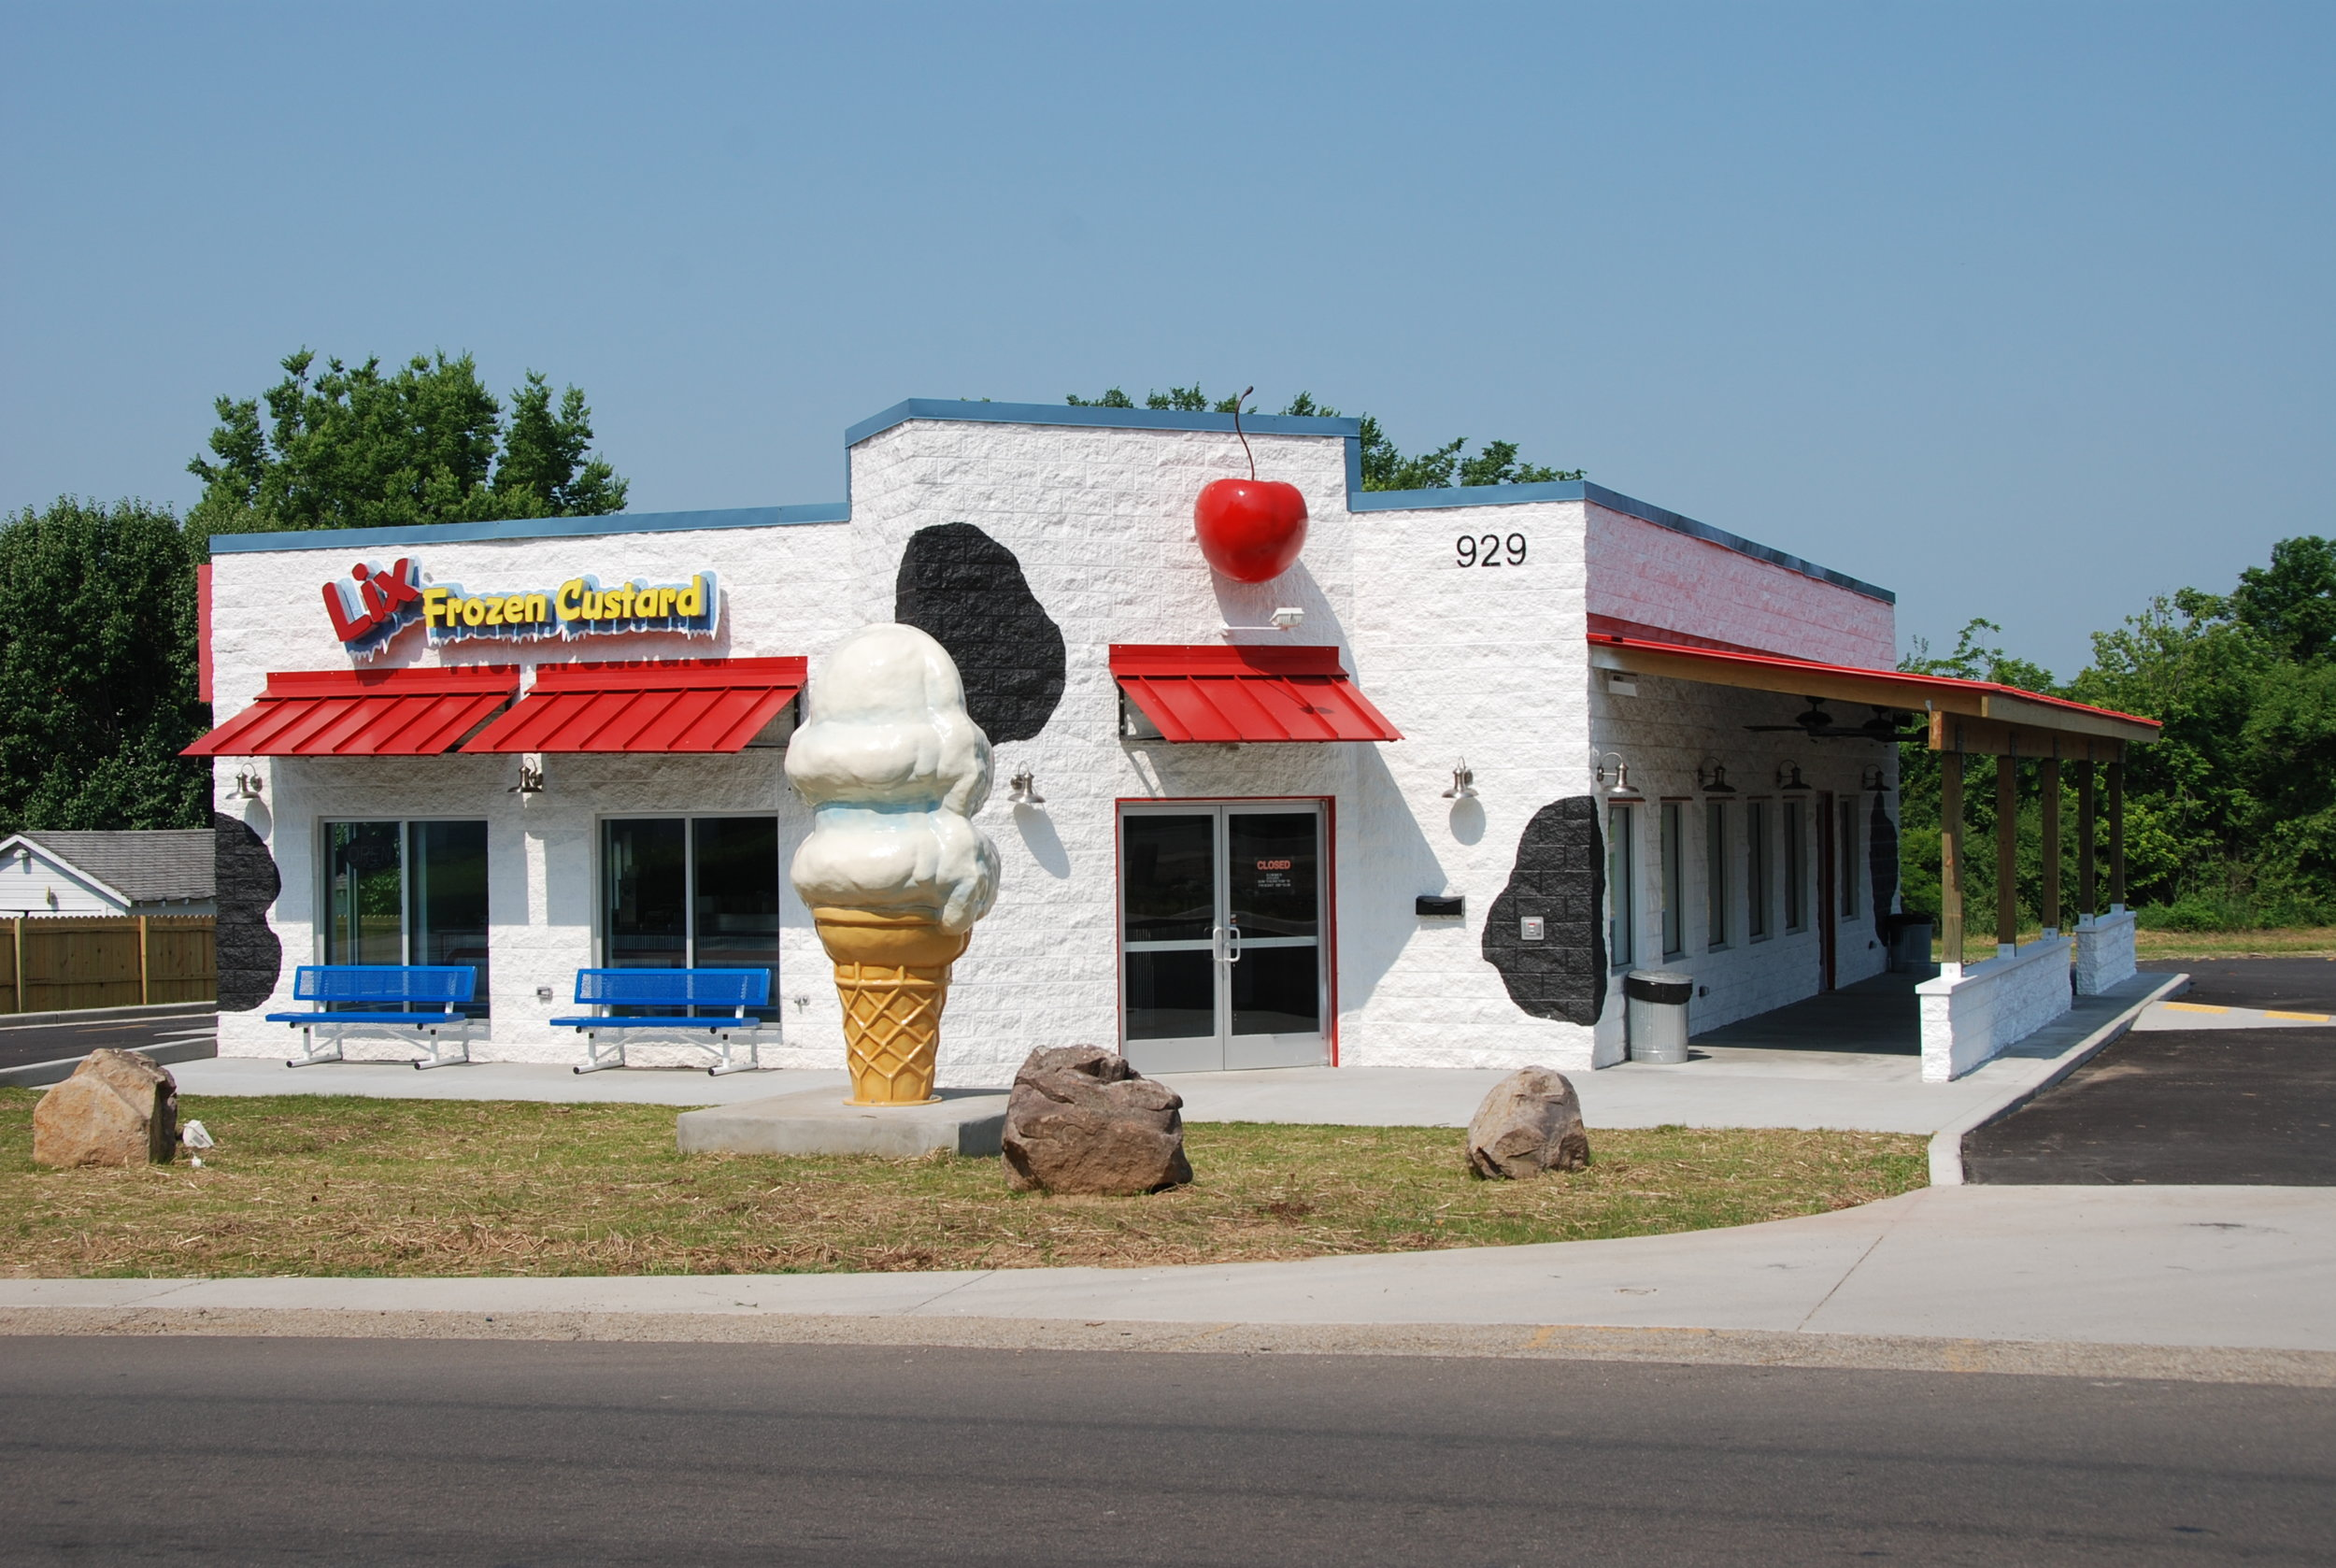 LIX FROZEN CUSTARD  Farmington, MO